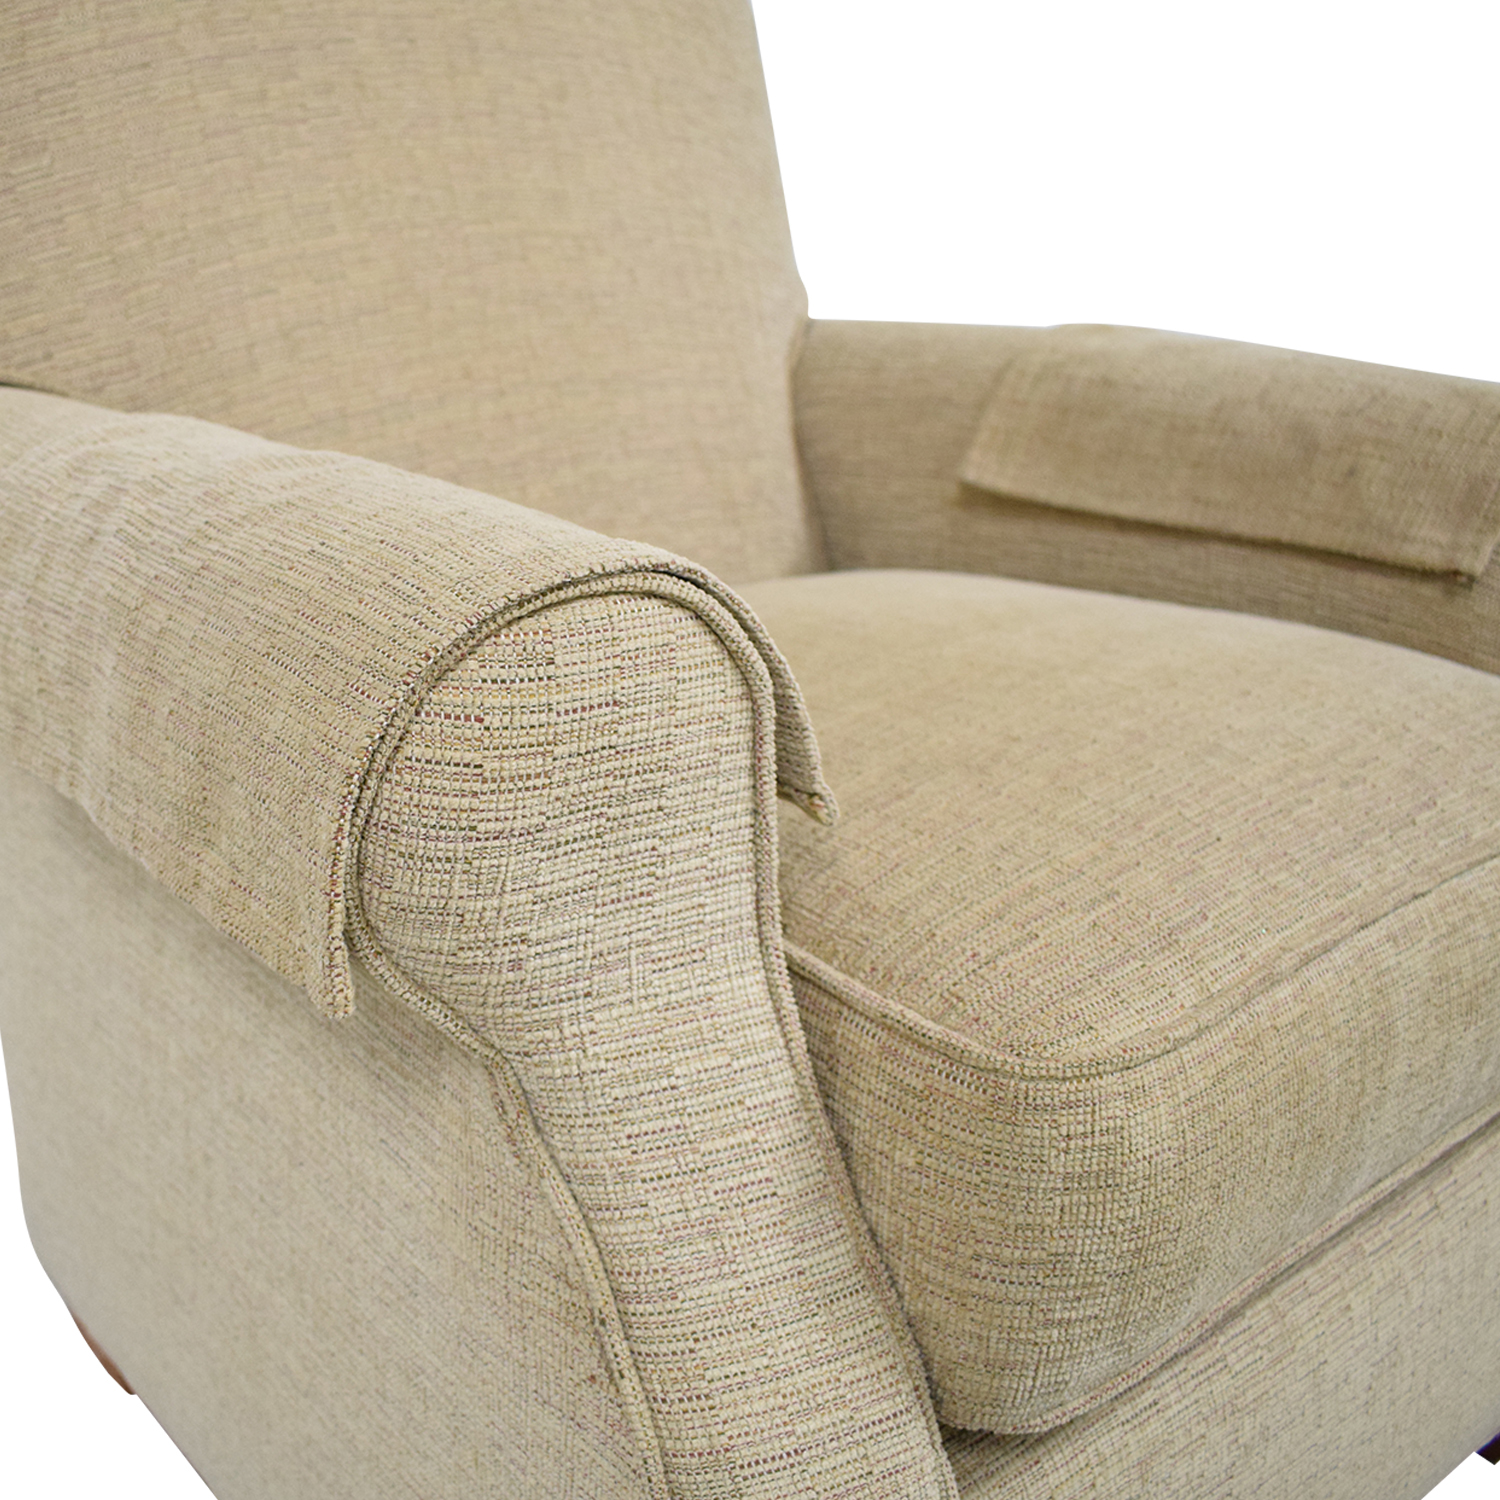 buy Macy's Upholstered Accent Chair Macy's